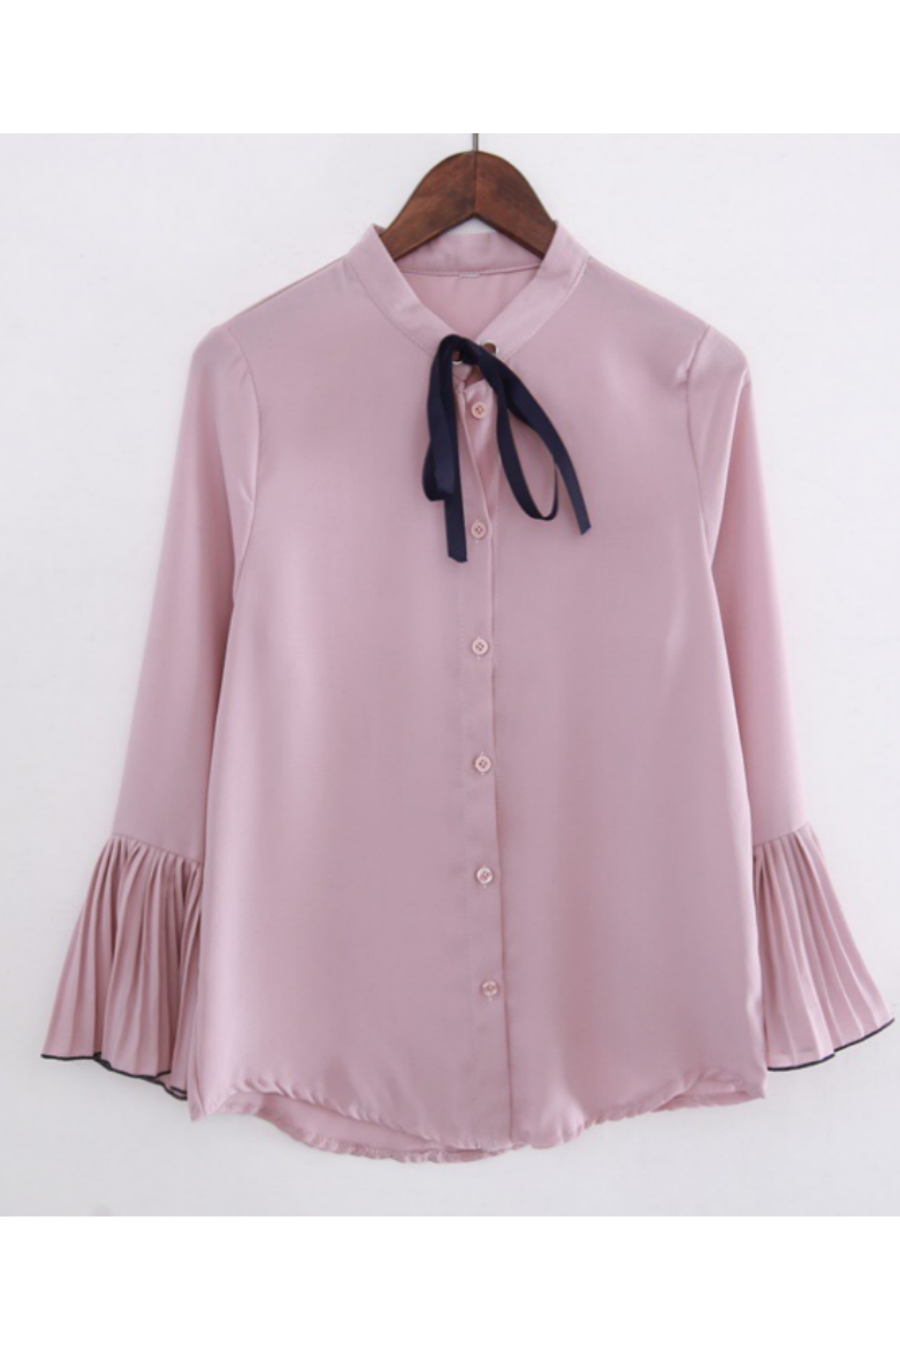 Chic Pink Lace Up Blouse